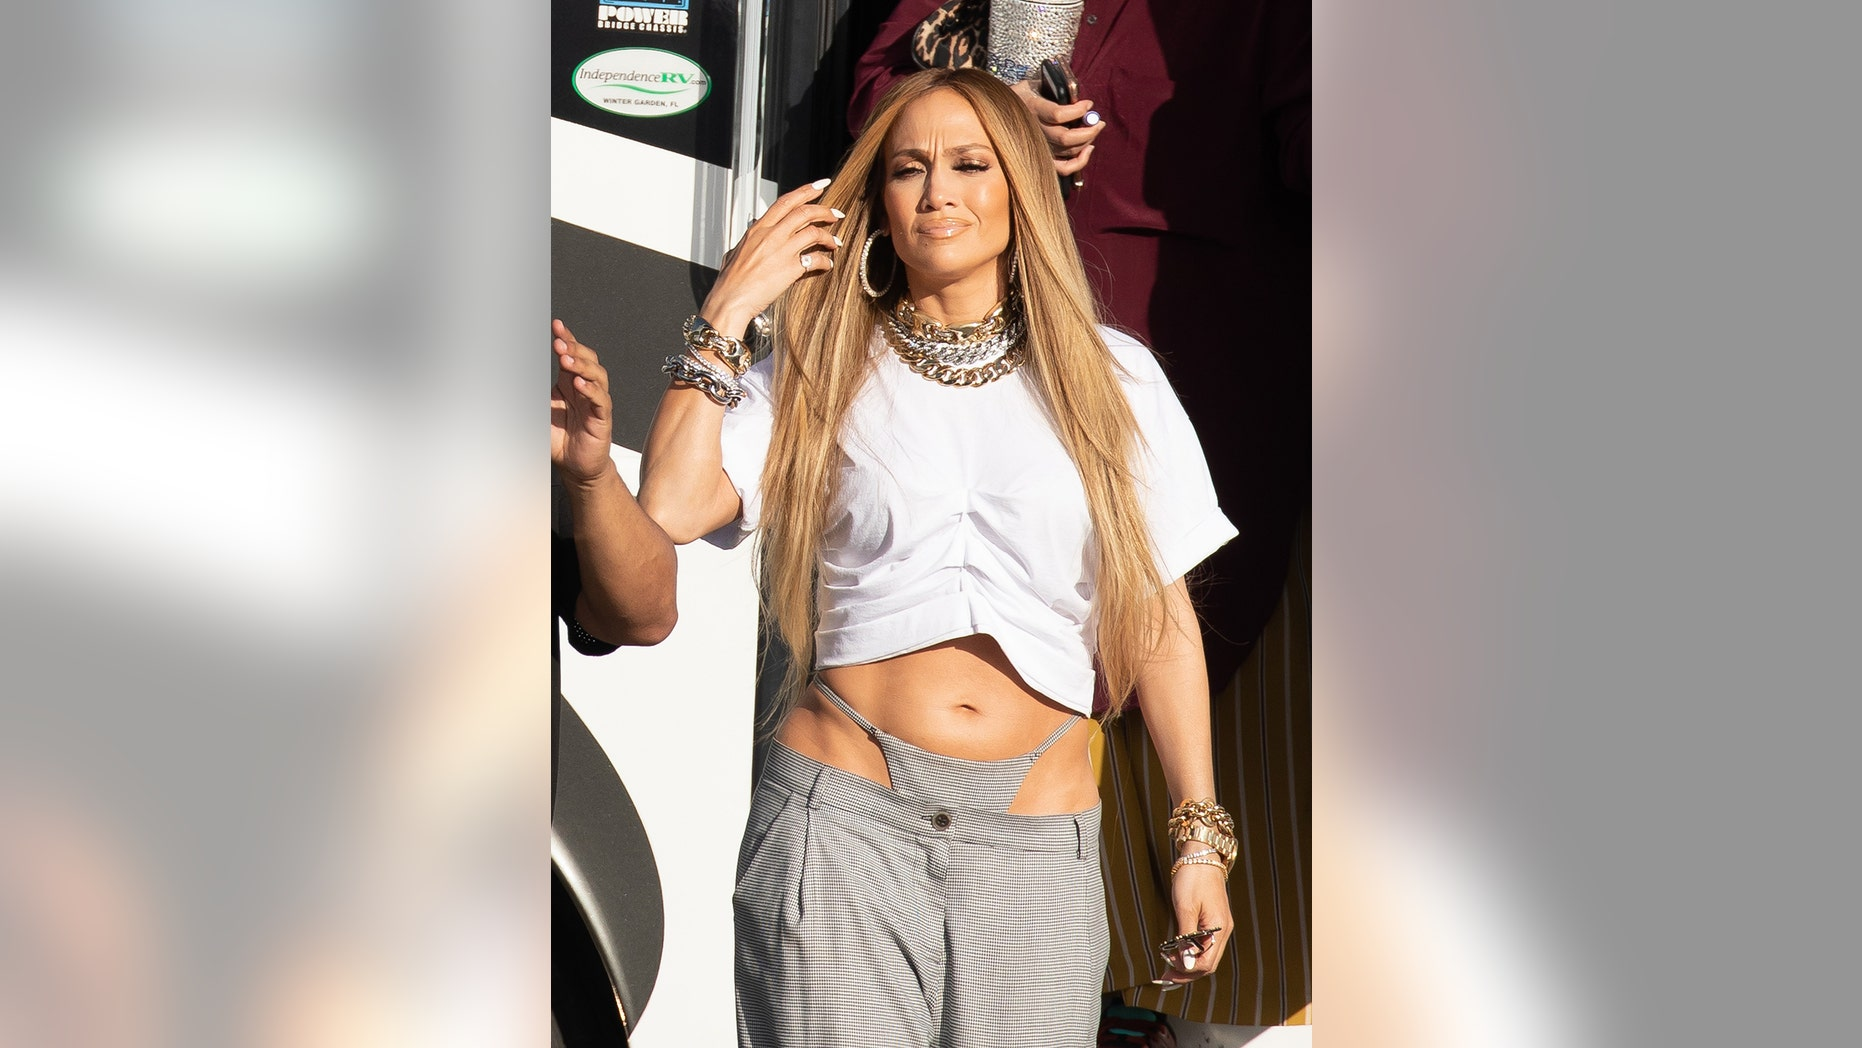 Jennifer Lopez matches her thong to her baggy pants as she shoots a music video with DJ Khaled in Miami.